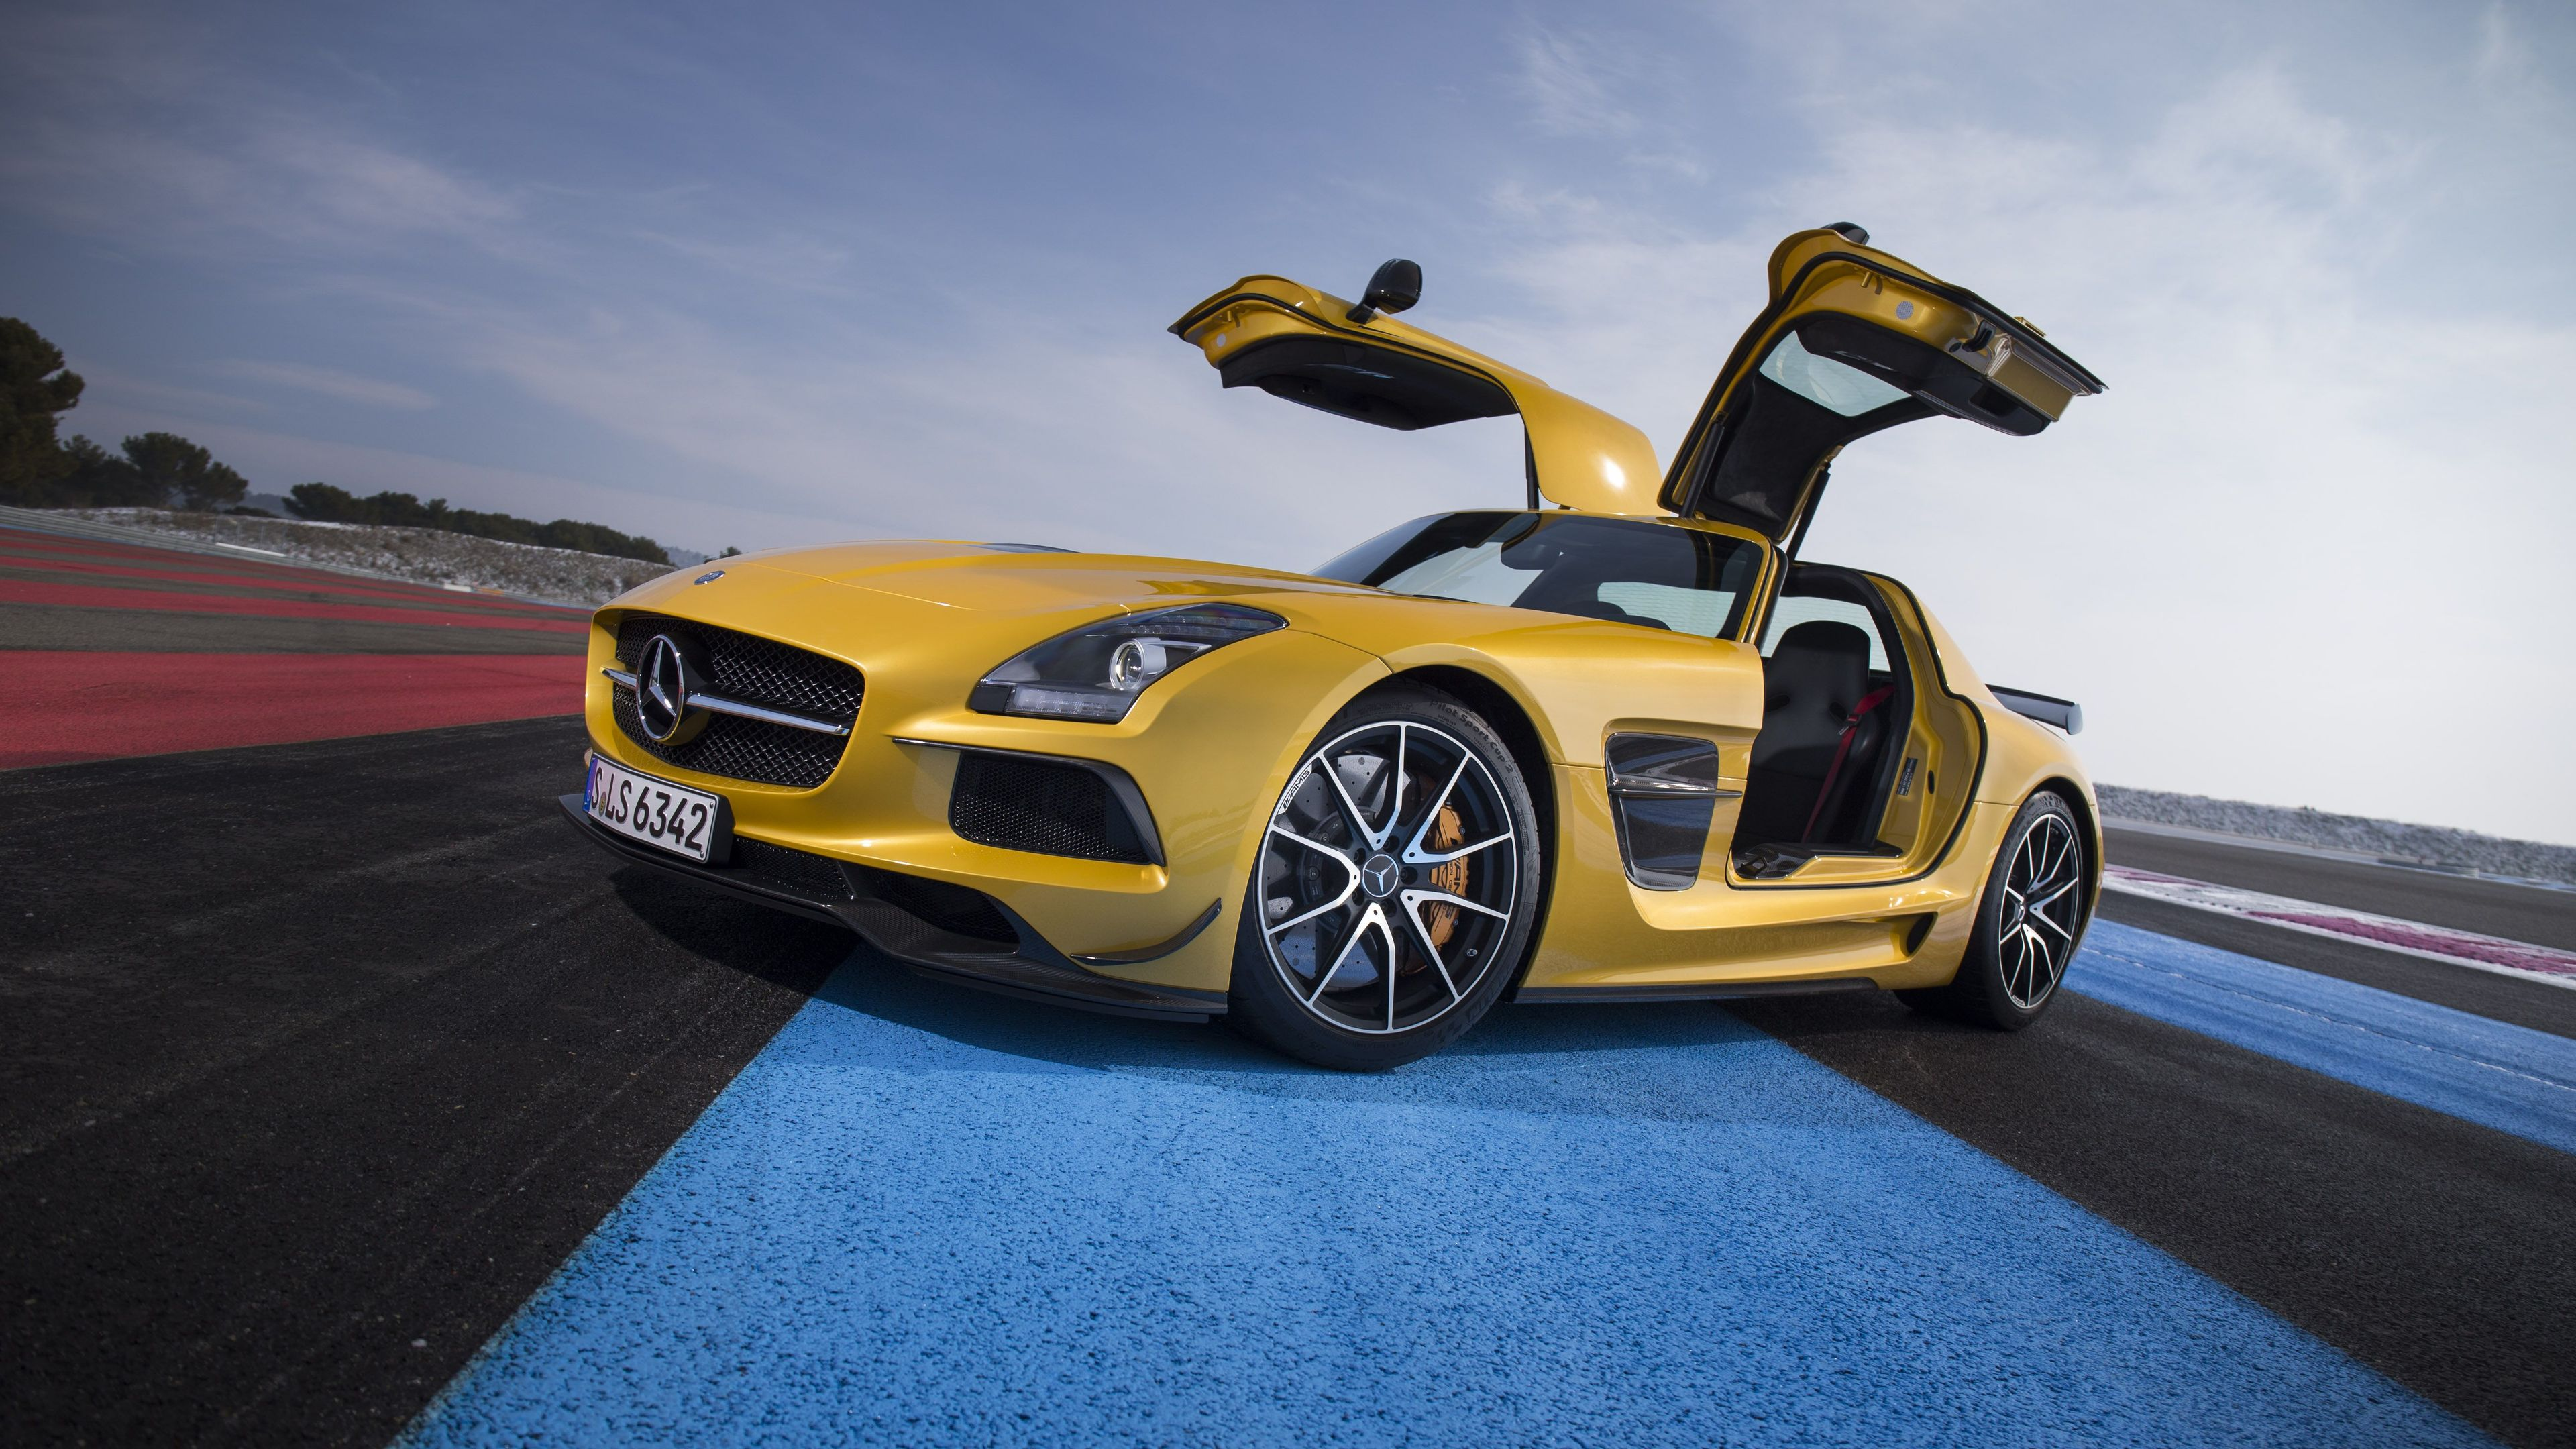 yellow mercedes benz amg gt 5k 1539114511 - Yellow Mercedes Benz Amg GT 5k - mercedes wallpapers, mercedes amg gtr wallpapers, hd-wallpapers, cars wallpapers, 5k wallpapers, 4k-wallpapers, 2018 cars wallpapers